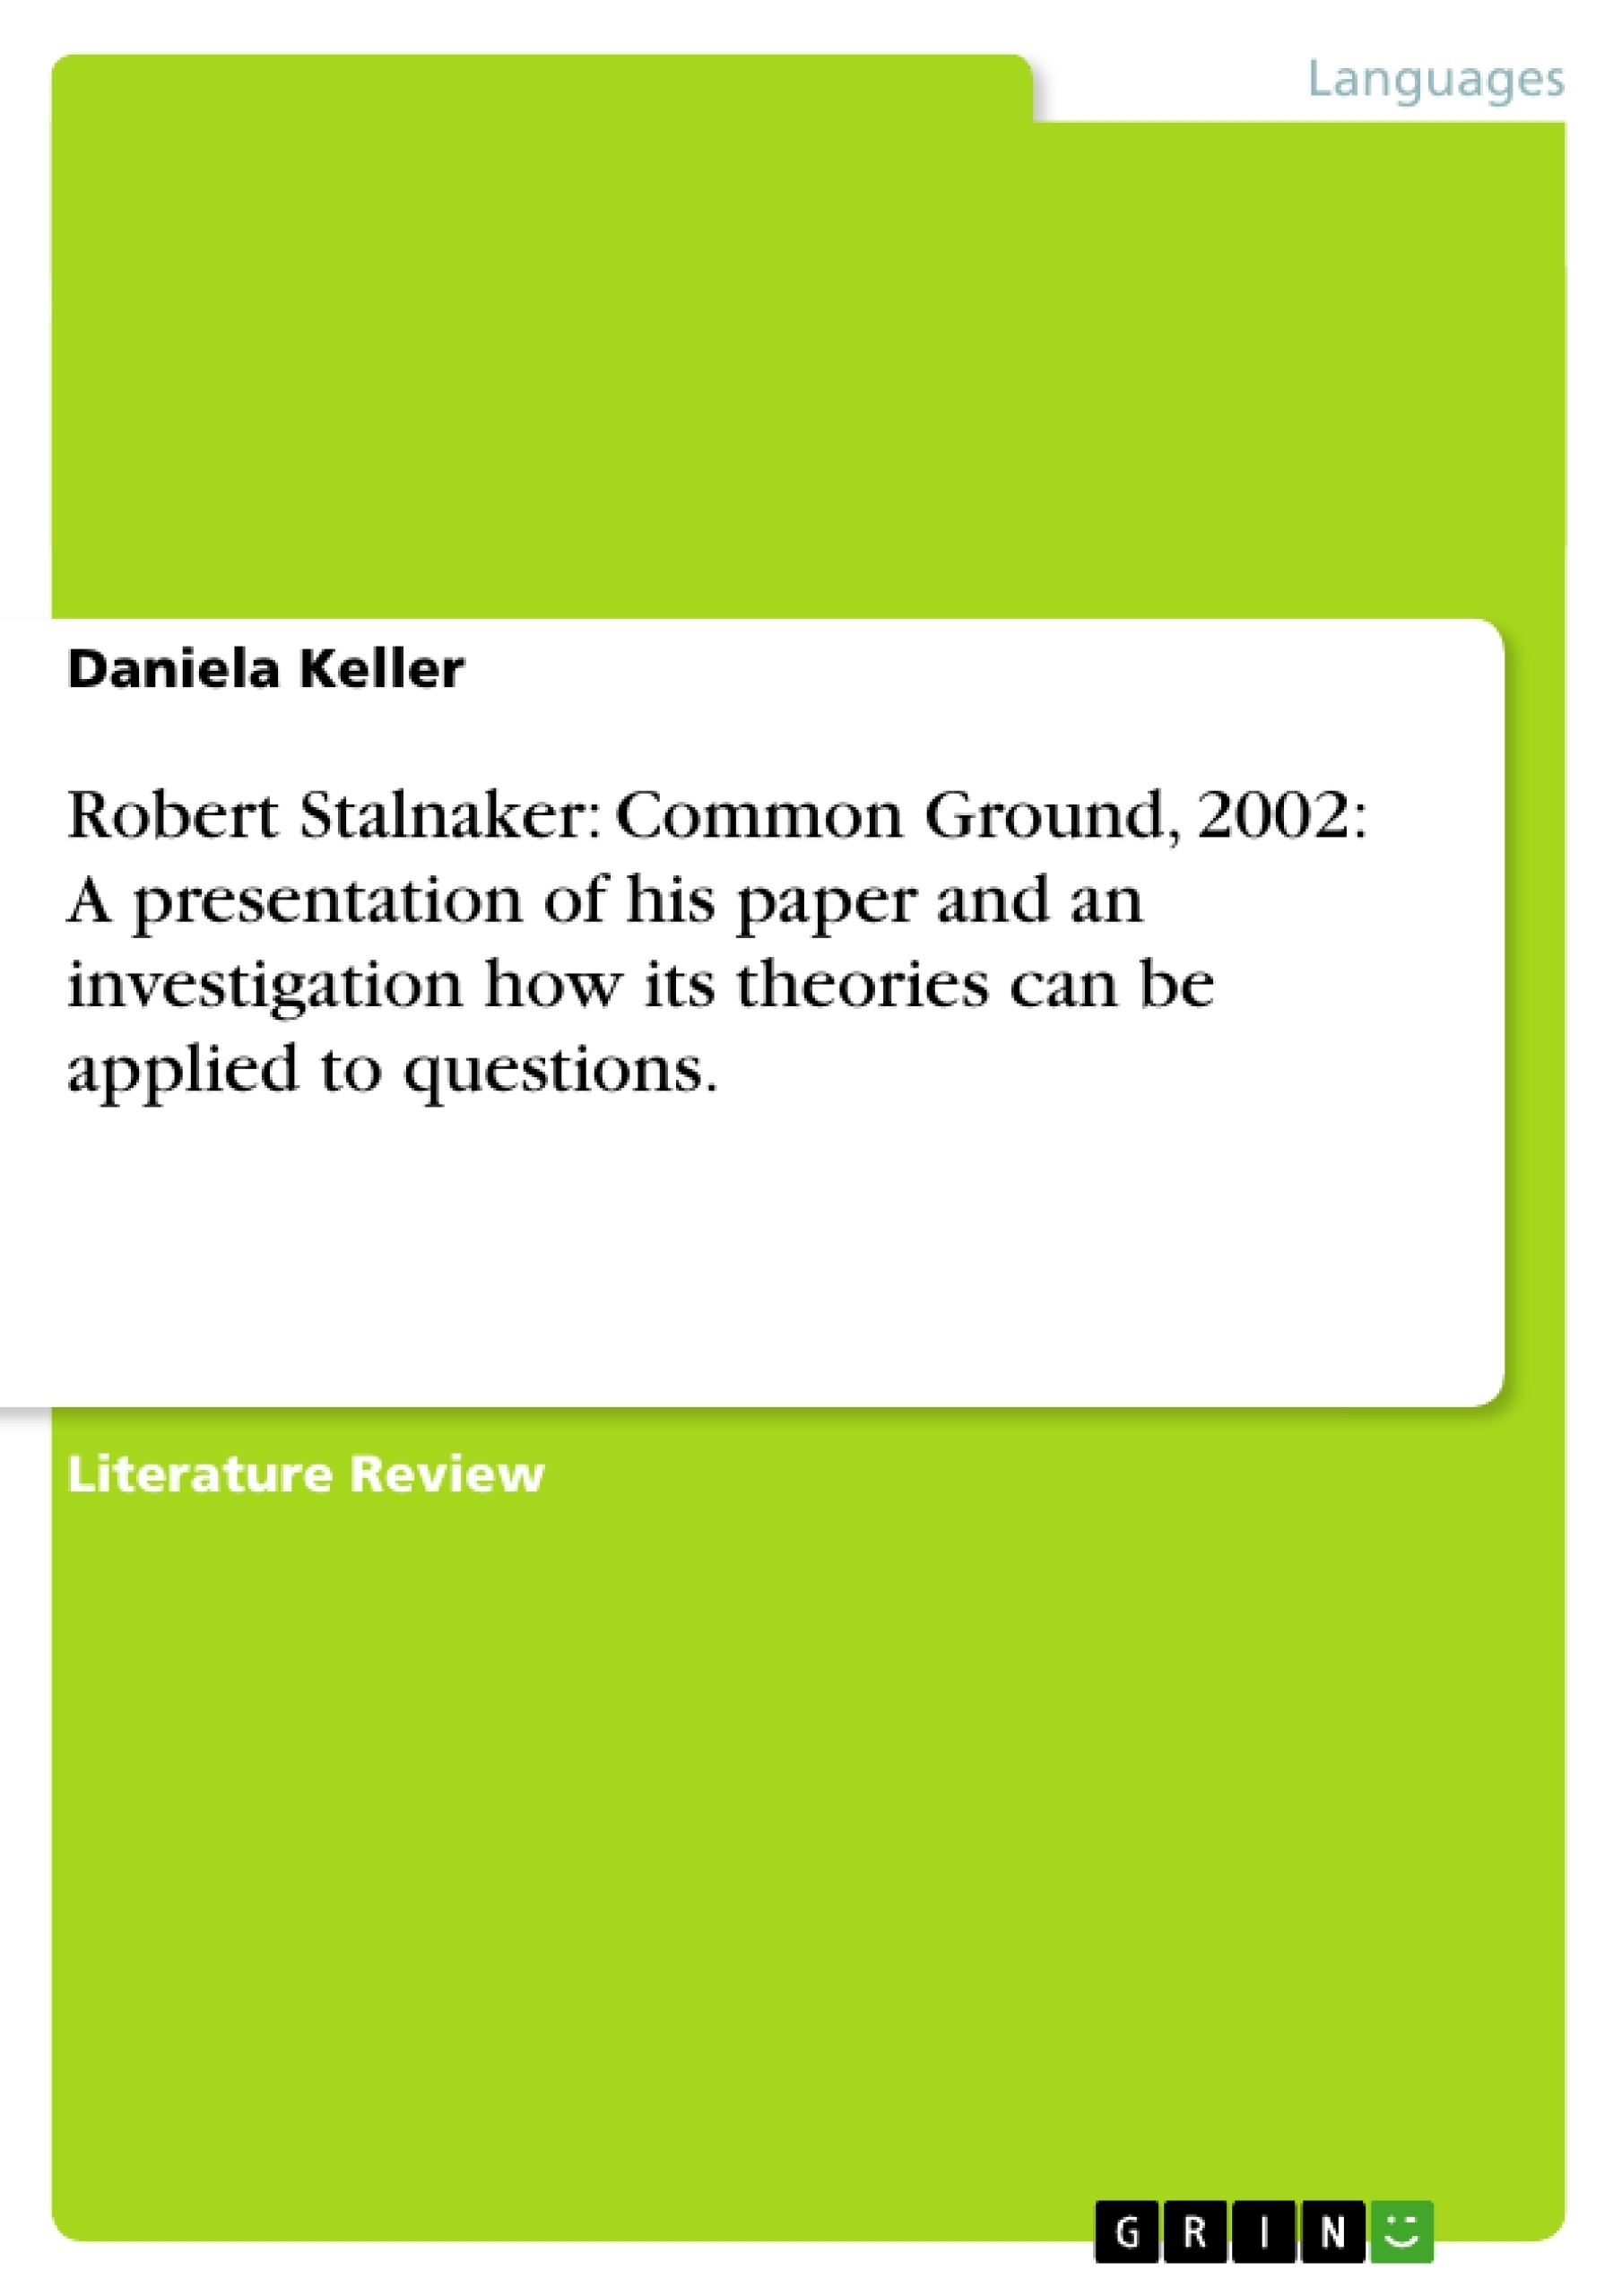 Title: Robert Stalnaker: Common Ground, 2002: A presentation of his paper and an investigation how its theories can be applied to questions.